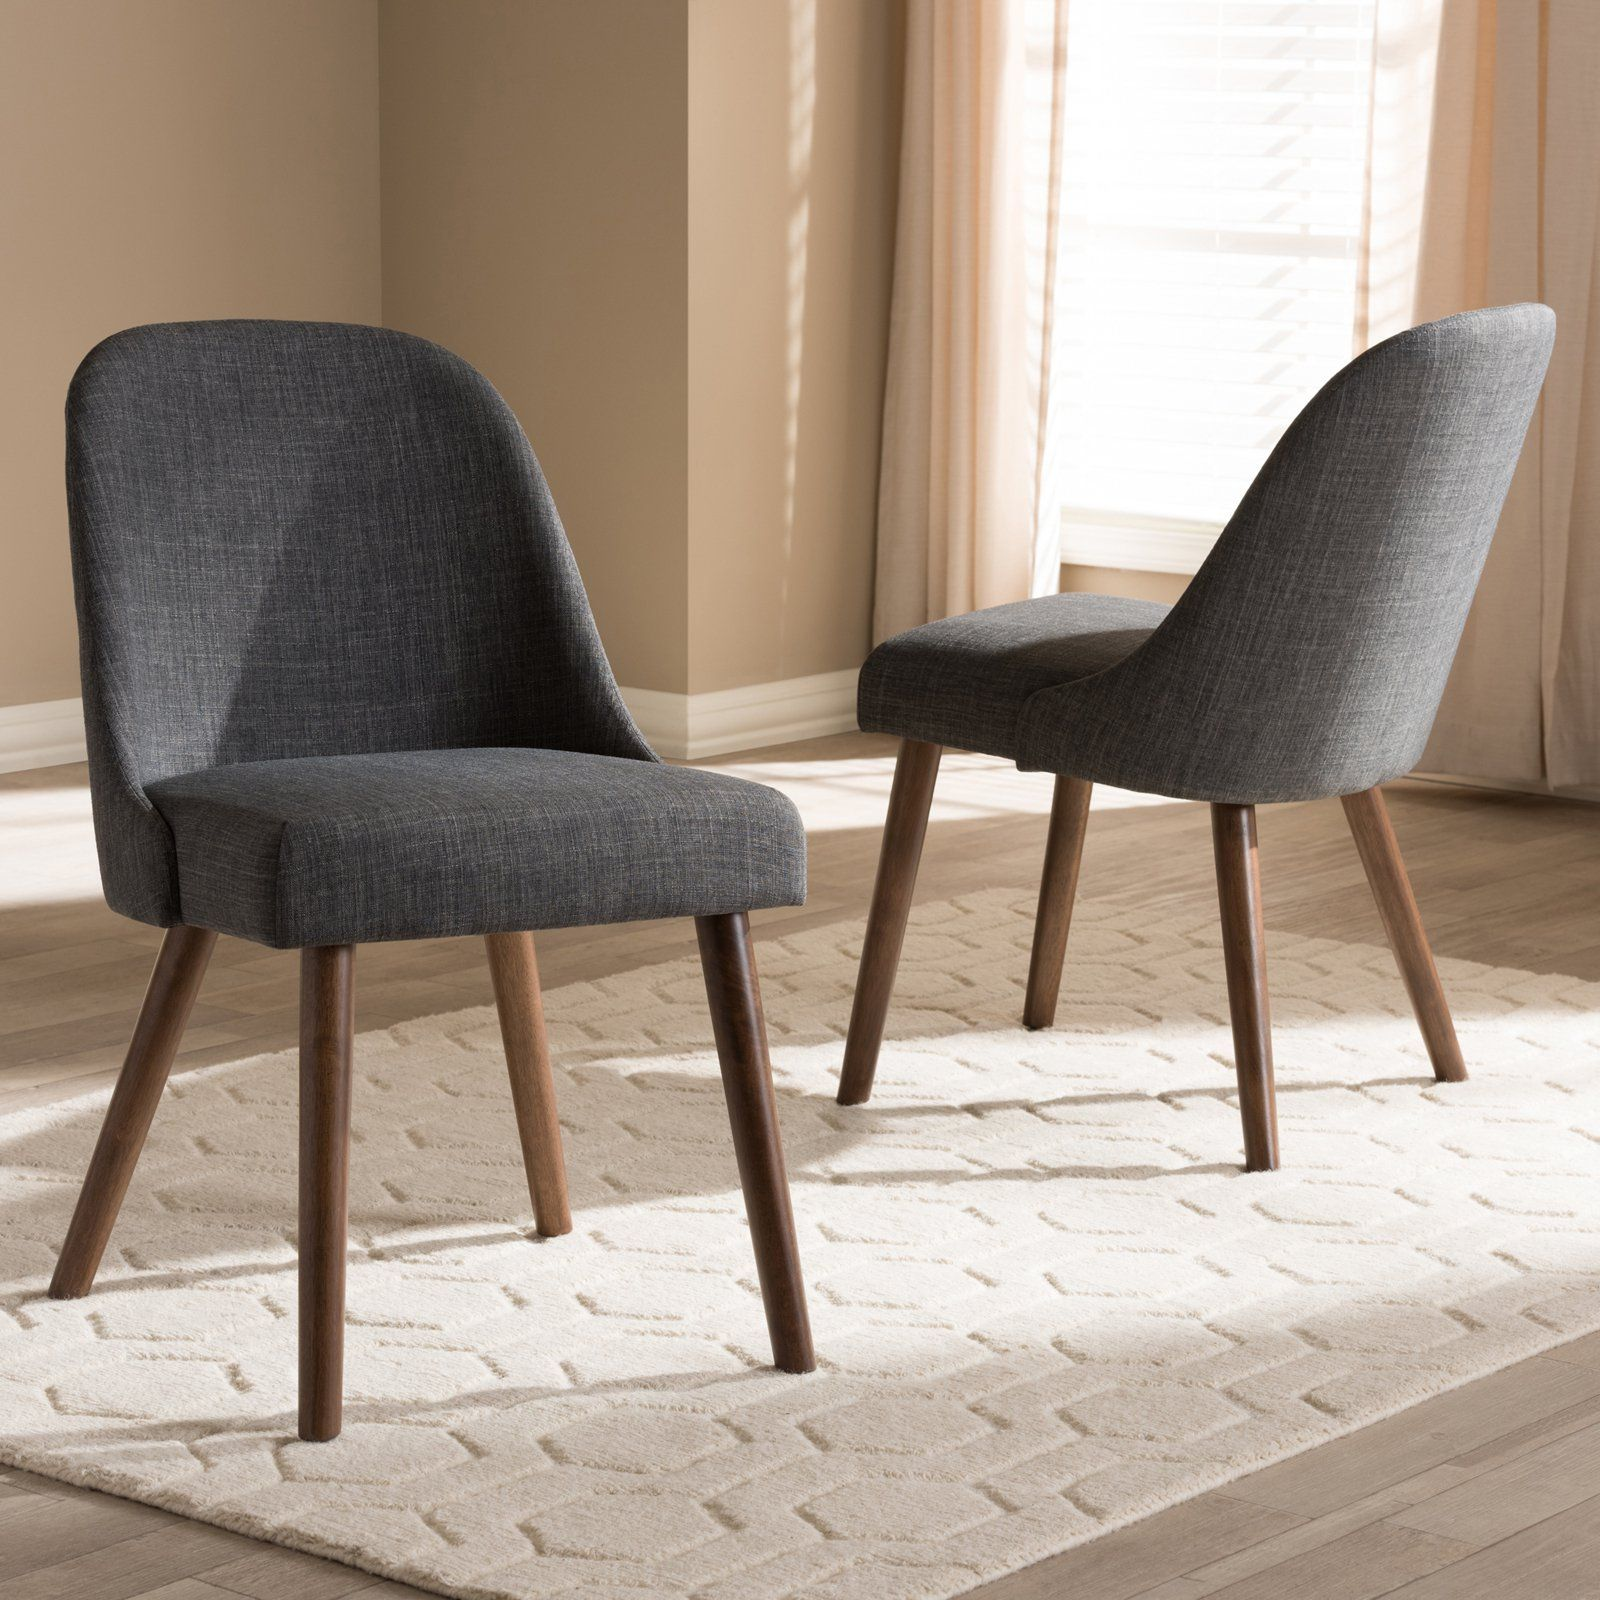 416df39e30ae Baxton Studio Cody Mid-Century Modern Fabric Upholstered Wood Dining Chair  - Set of 2 Dark Gray